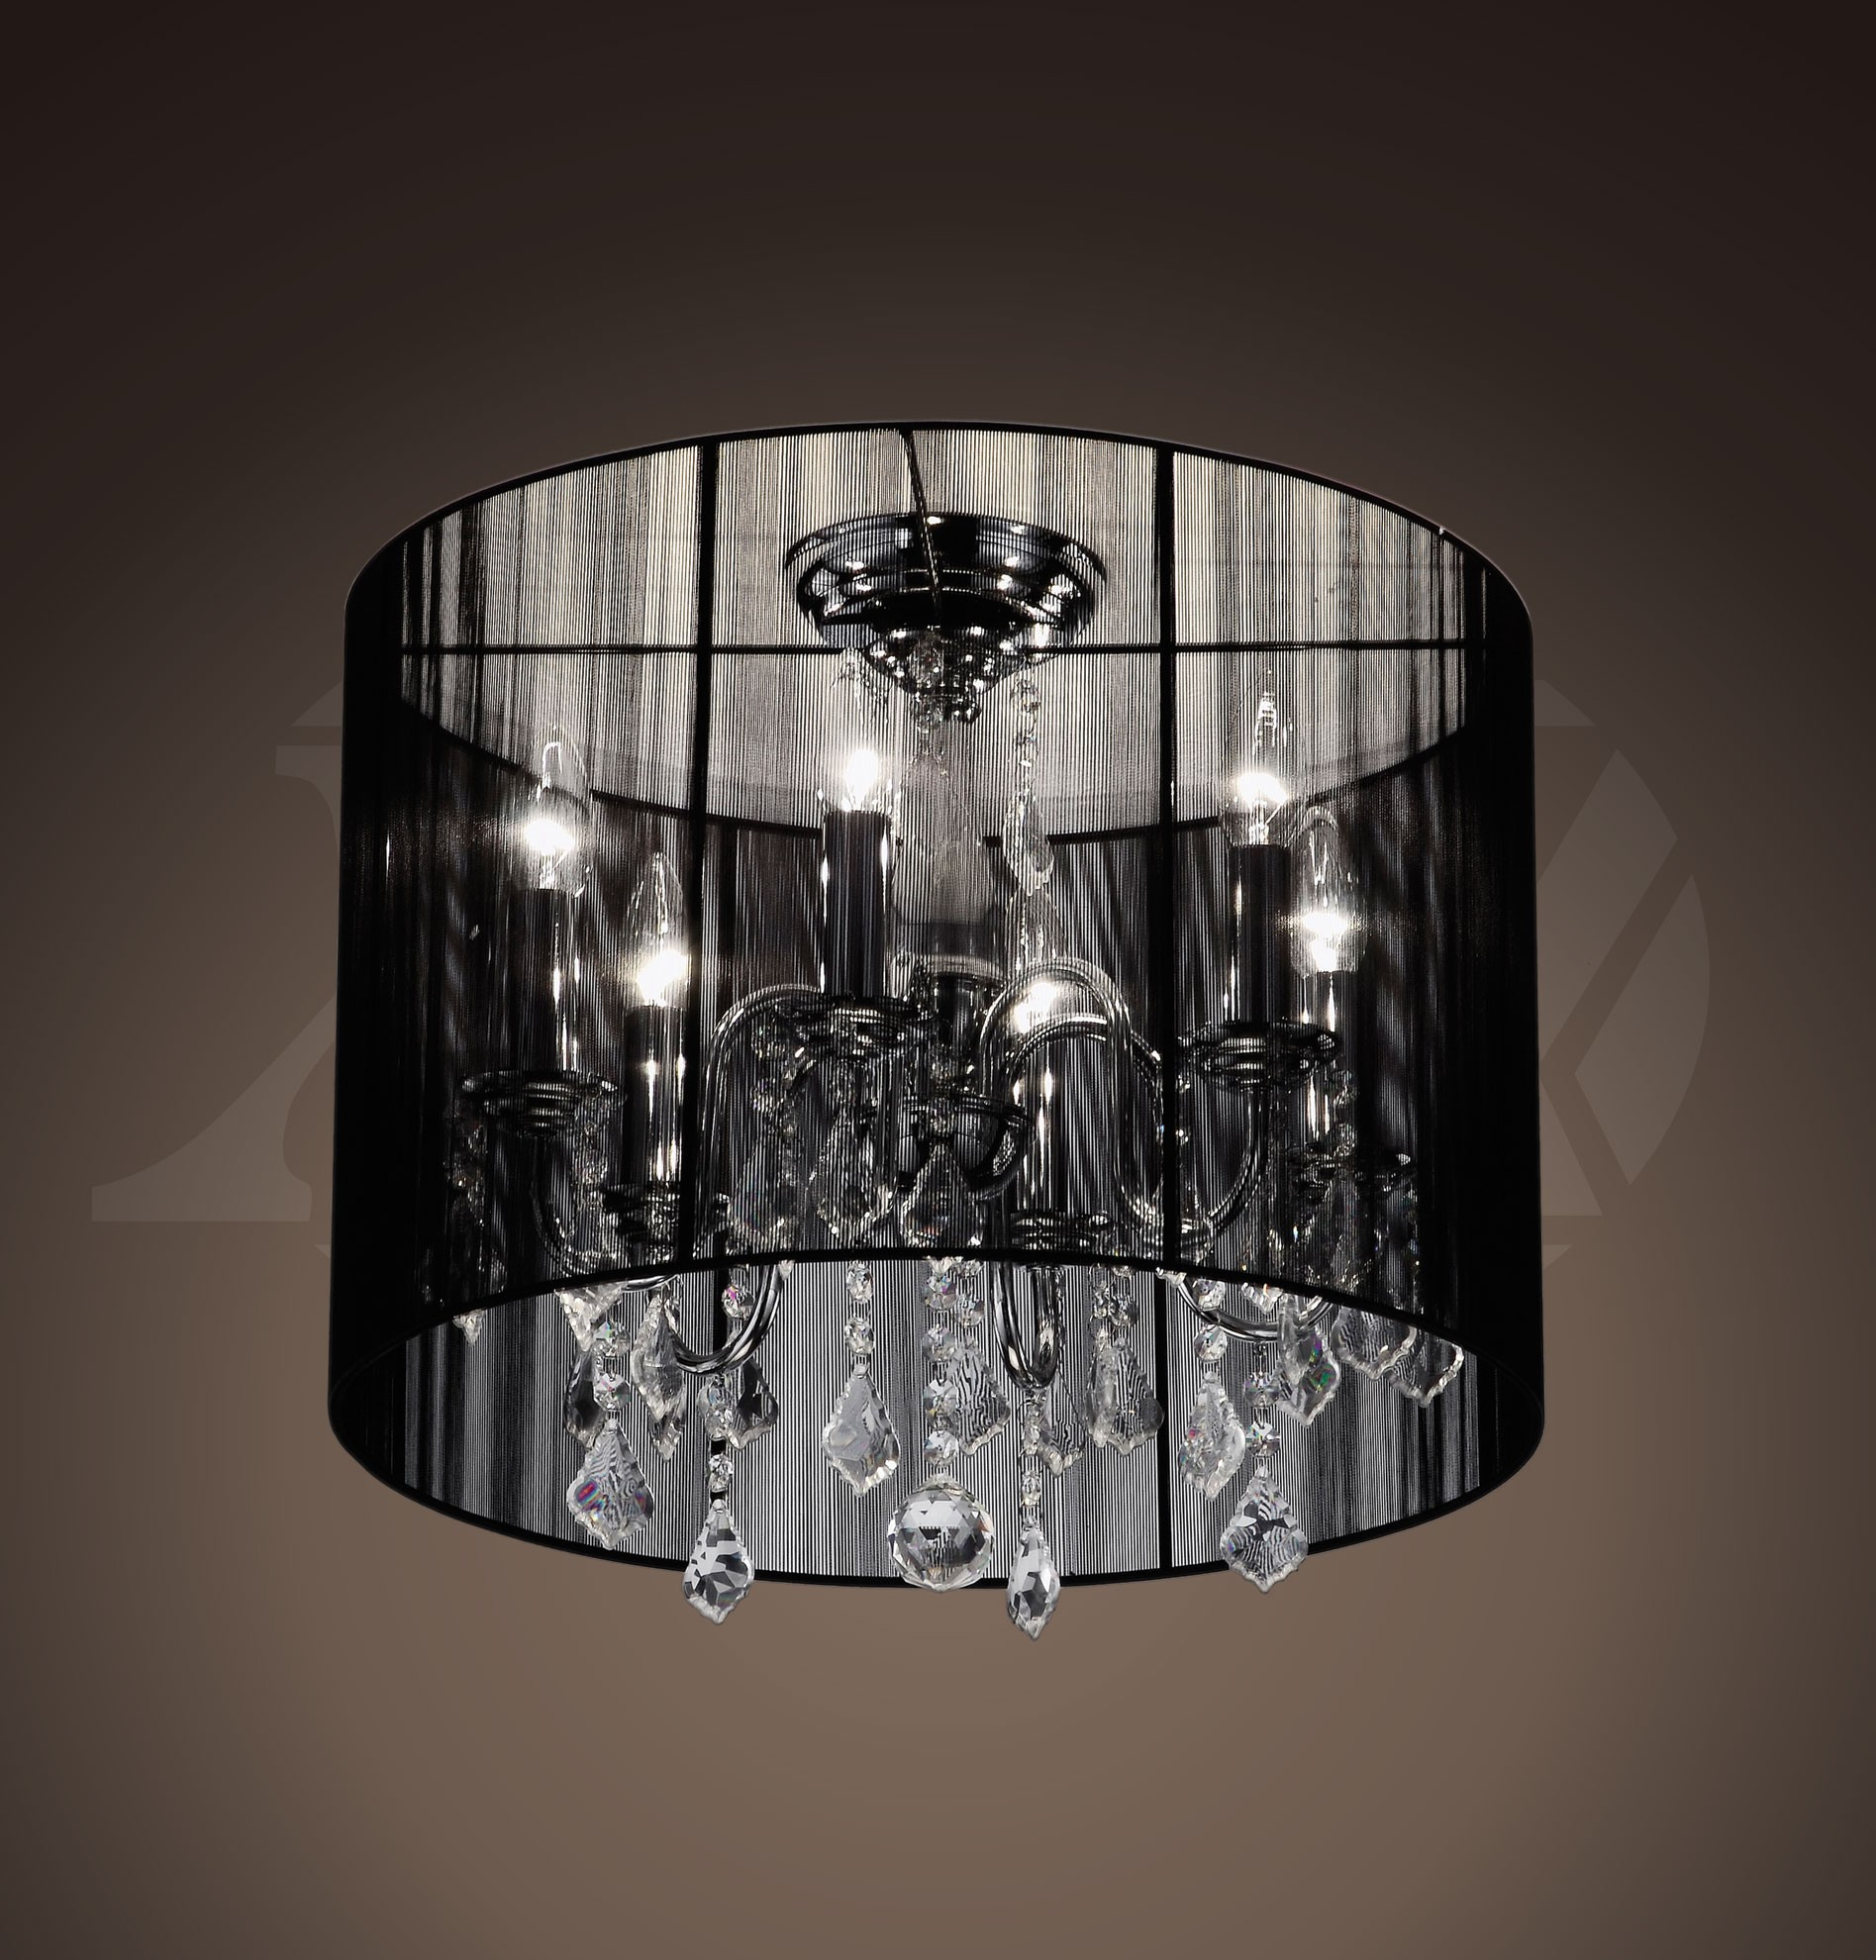 Alondra 6 Light Black Crystal Shade Chrome Ceiling Mount Chandelier 9 H X